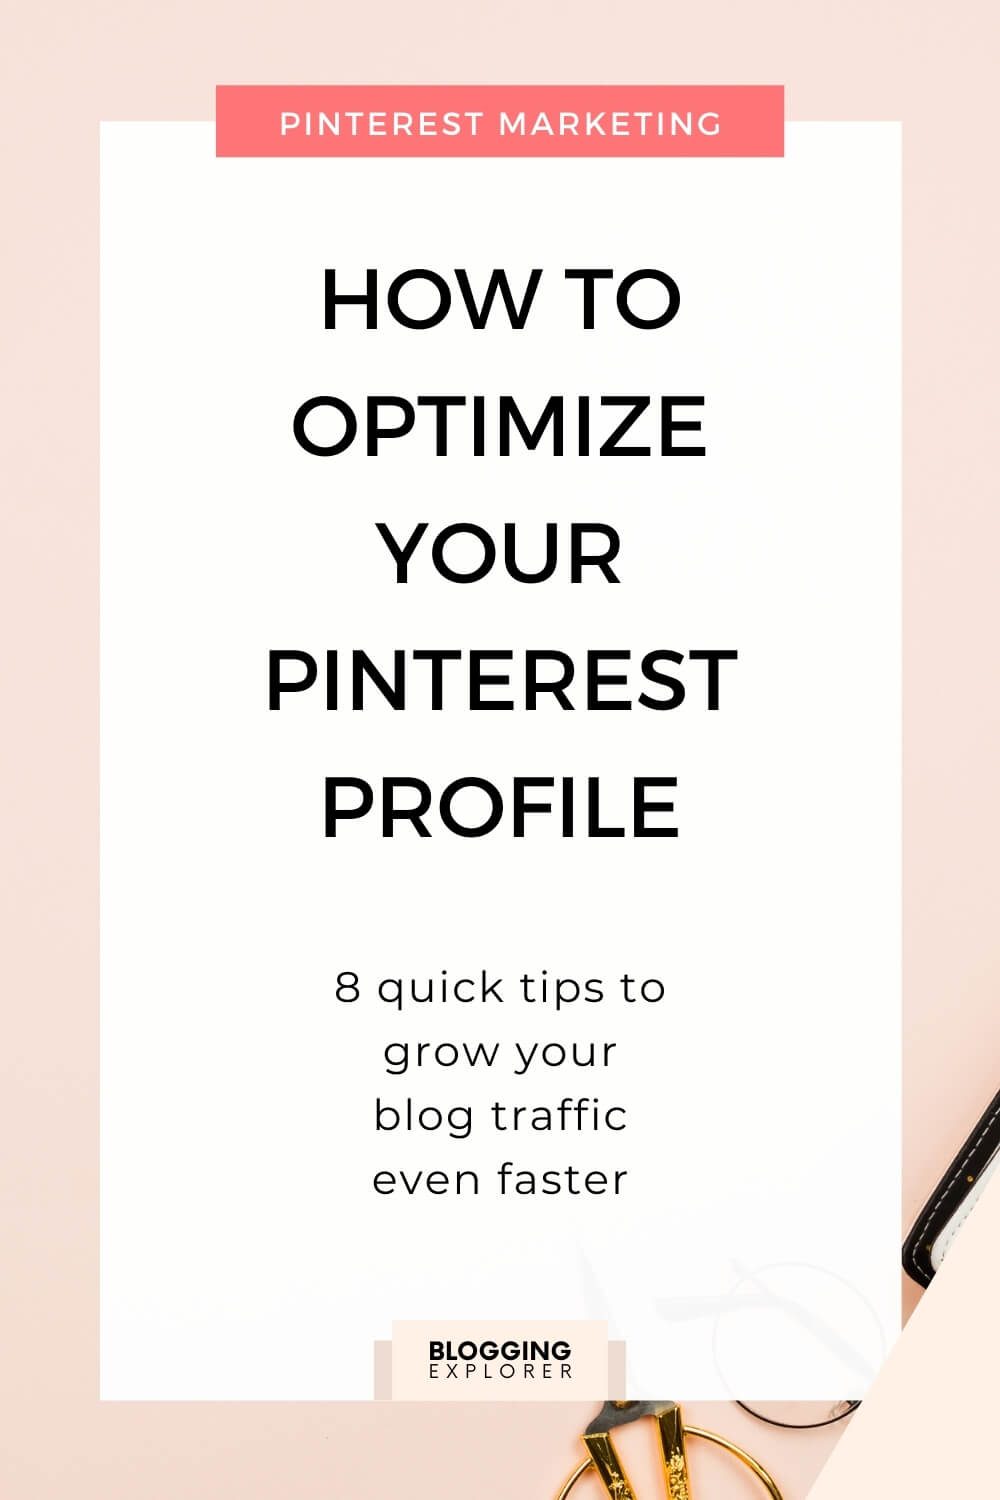 How to optimize your Pinterest profile to grow blog traffic – Pinterest marketing tips for bloggers